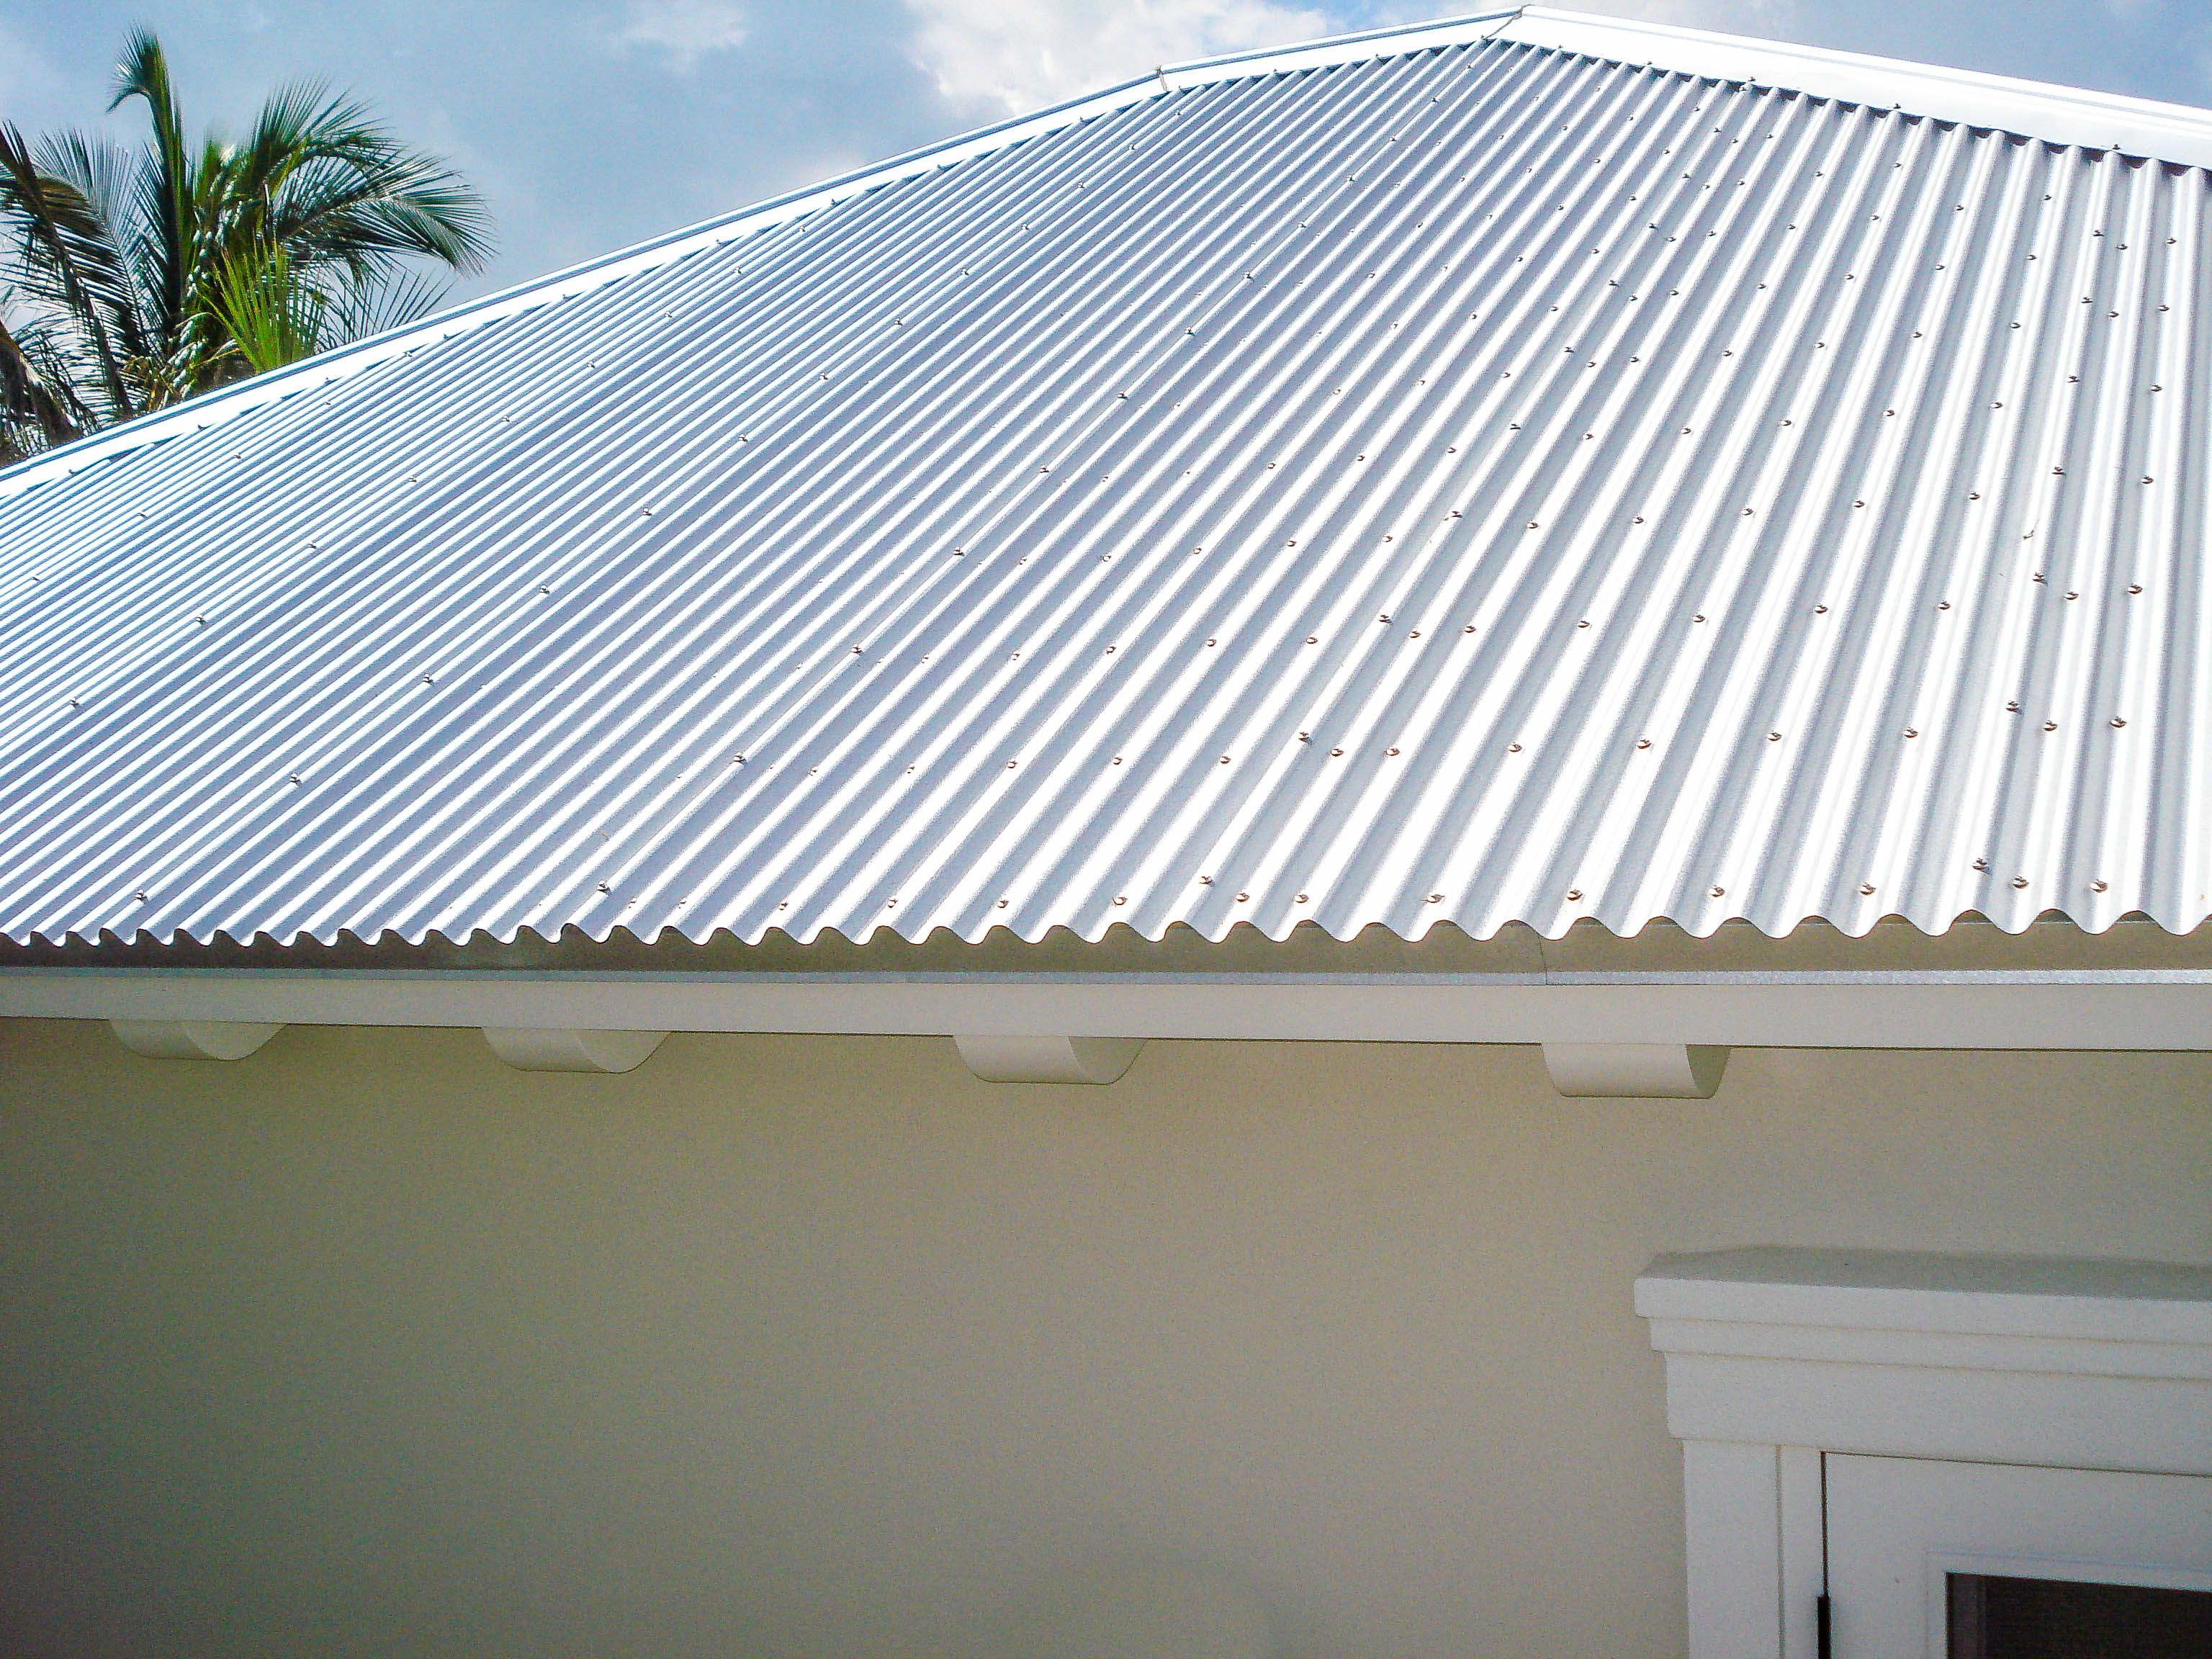 Corrugated Metal Roof Fabricated And Installed By Mullet S Aluminum Products Inc Corrugated Metal Roof Metal Roofing Systems Metal Roof